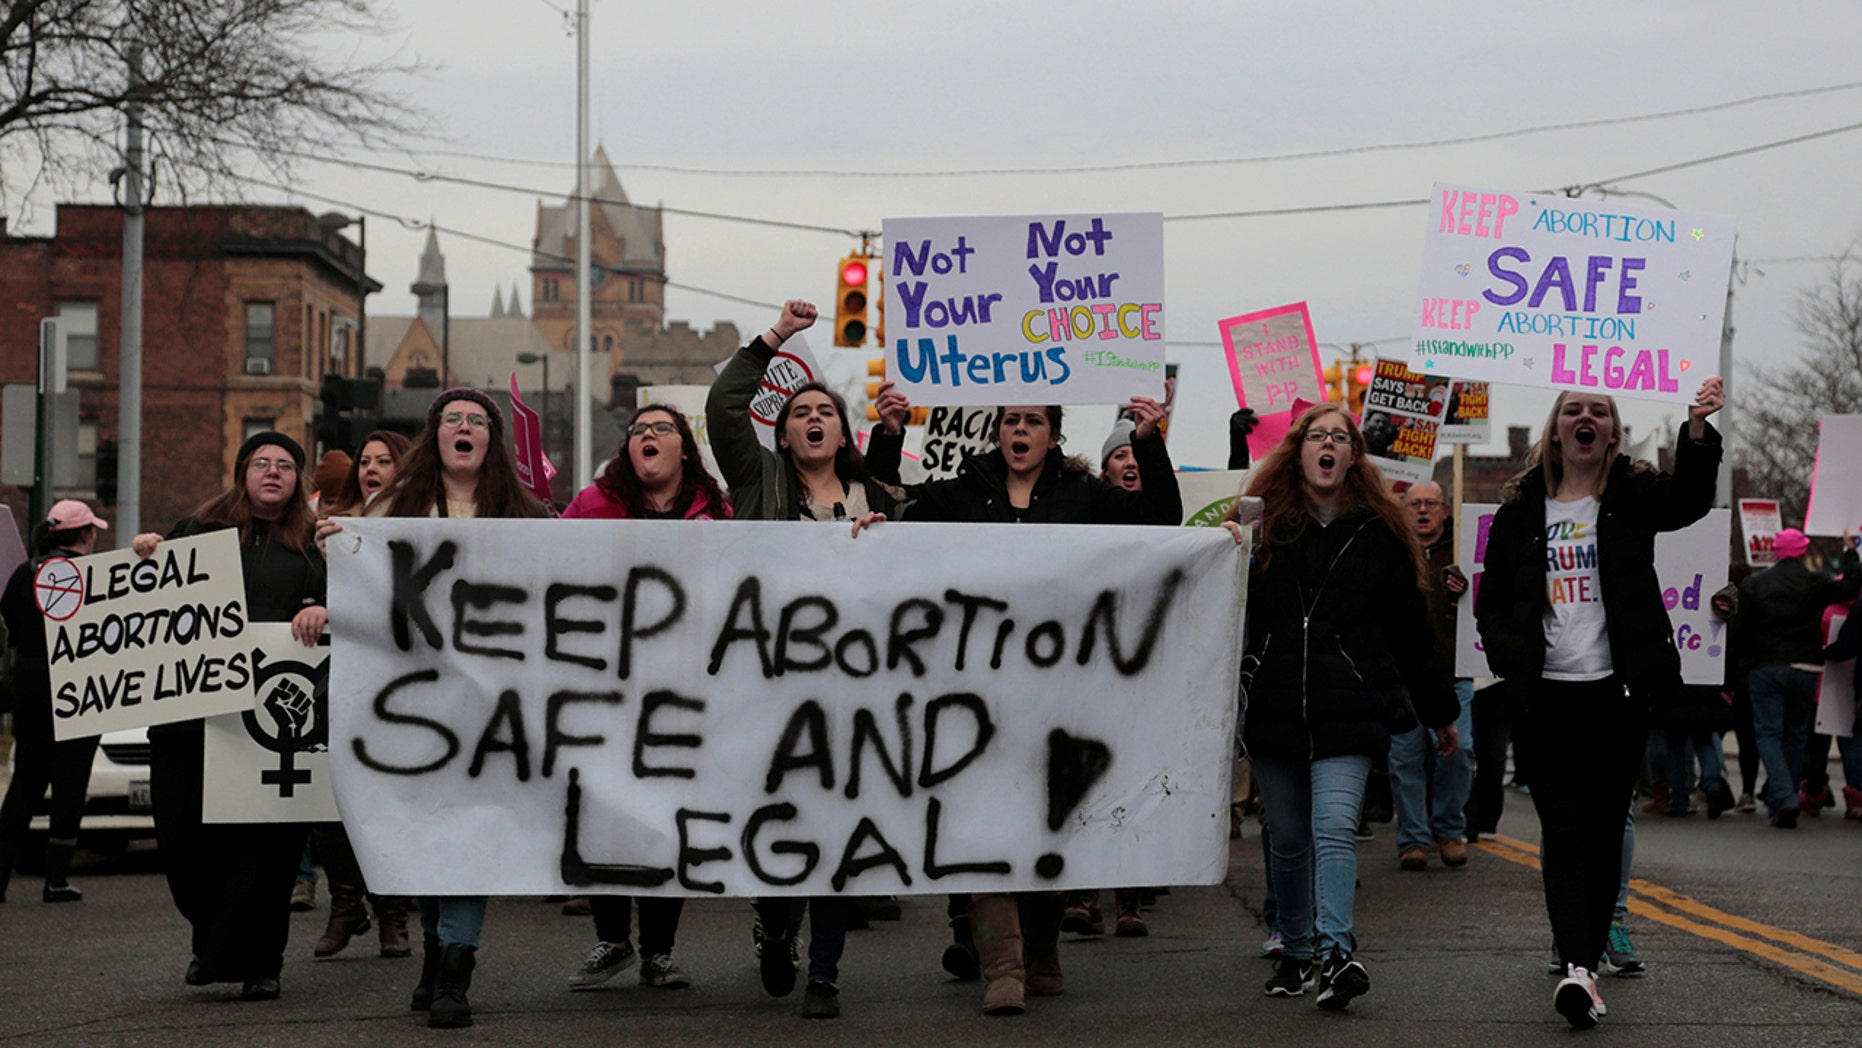 Supporters of Planned Parenthood rally outside a Planned Parenthood clinic in Detroit, Michigan, U.S. February 11, 2017. REUTERS/Rebecca Cook - RC15C2B406B0